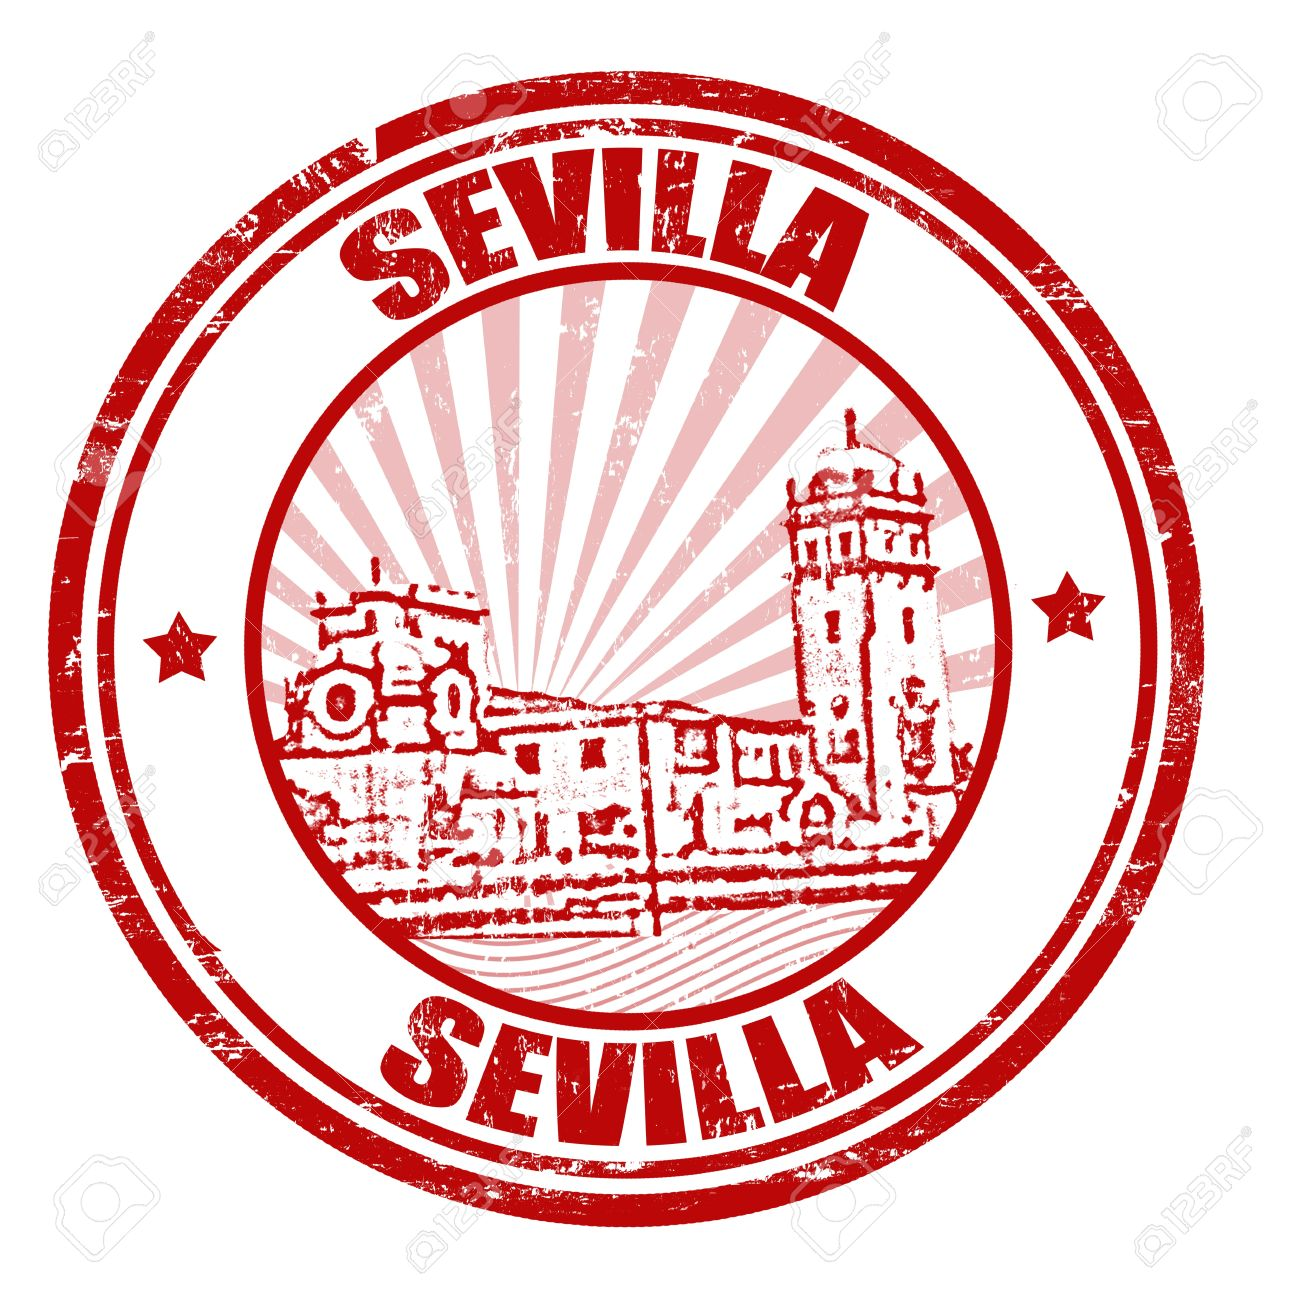 Sevilla Grunge Rubber Stamp, Illustration Royalty Free Cliparts.